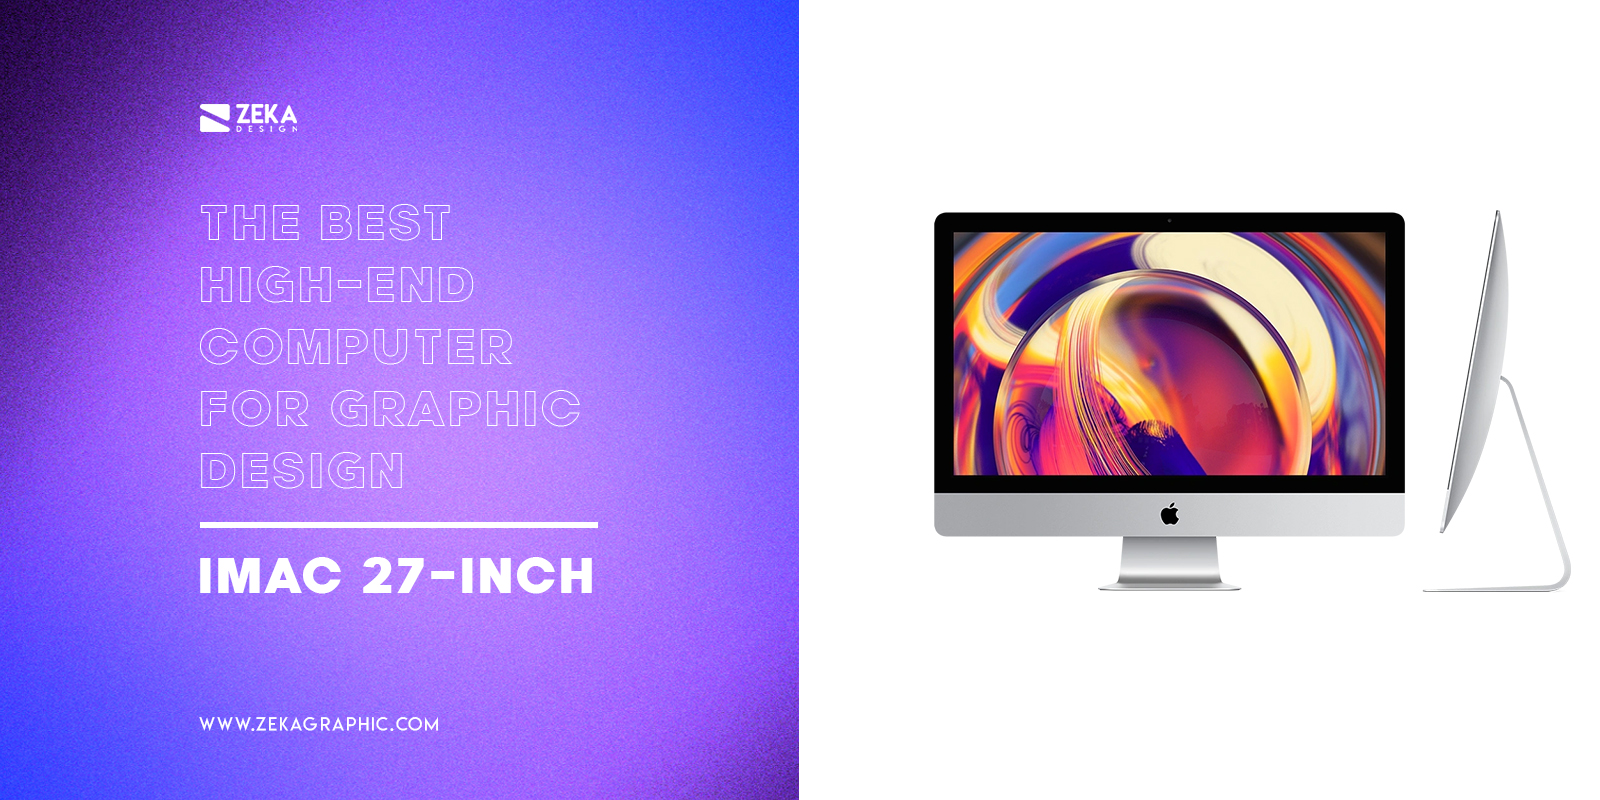 Apple iMac 27 inch Best High End Computer For Graphic Design